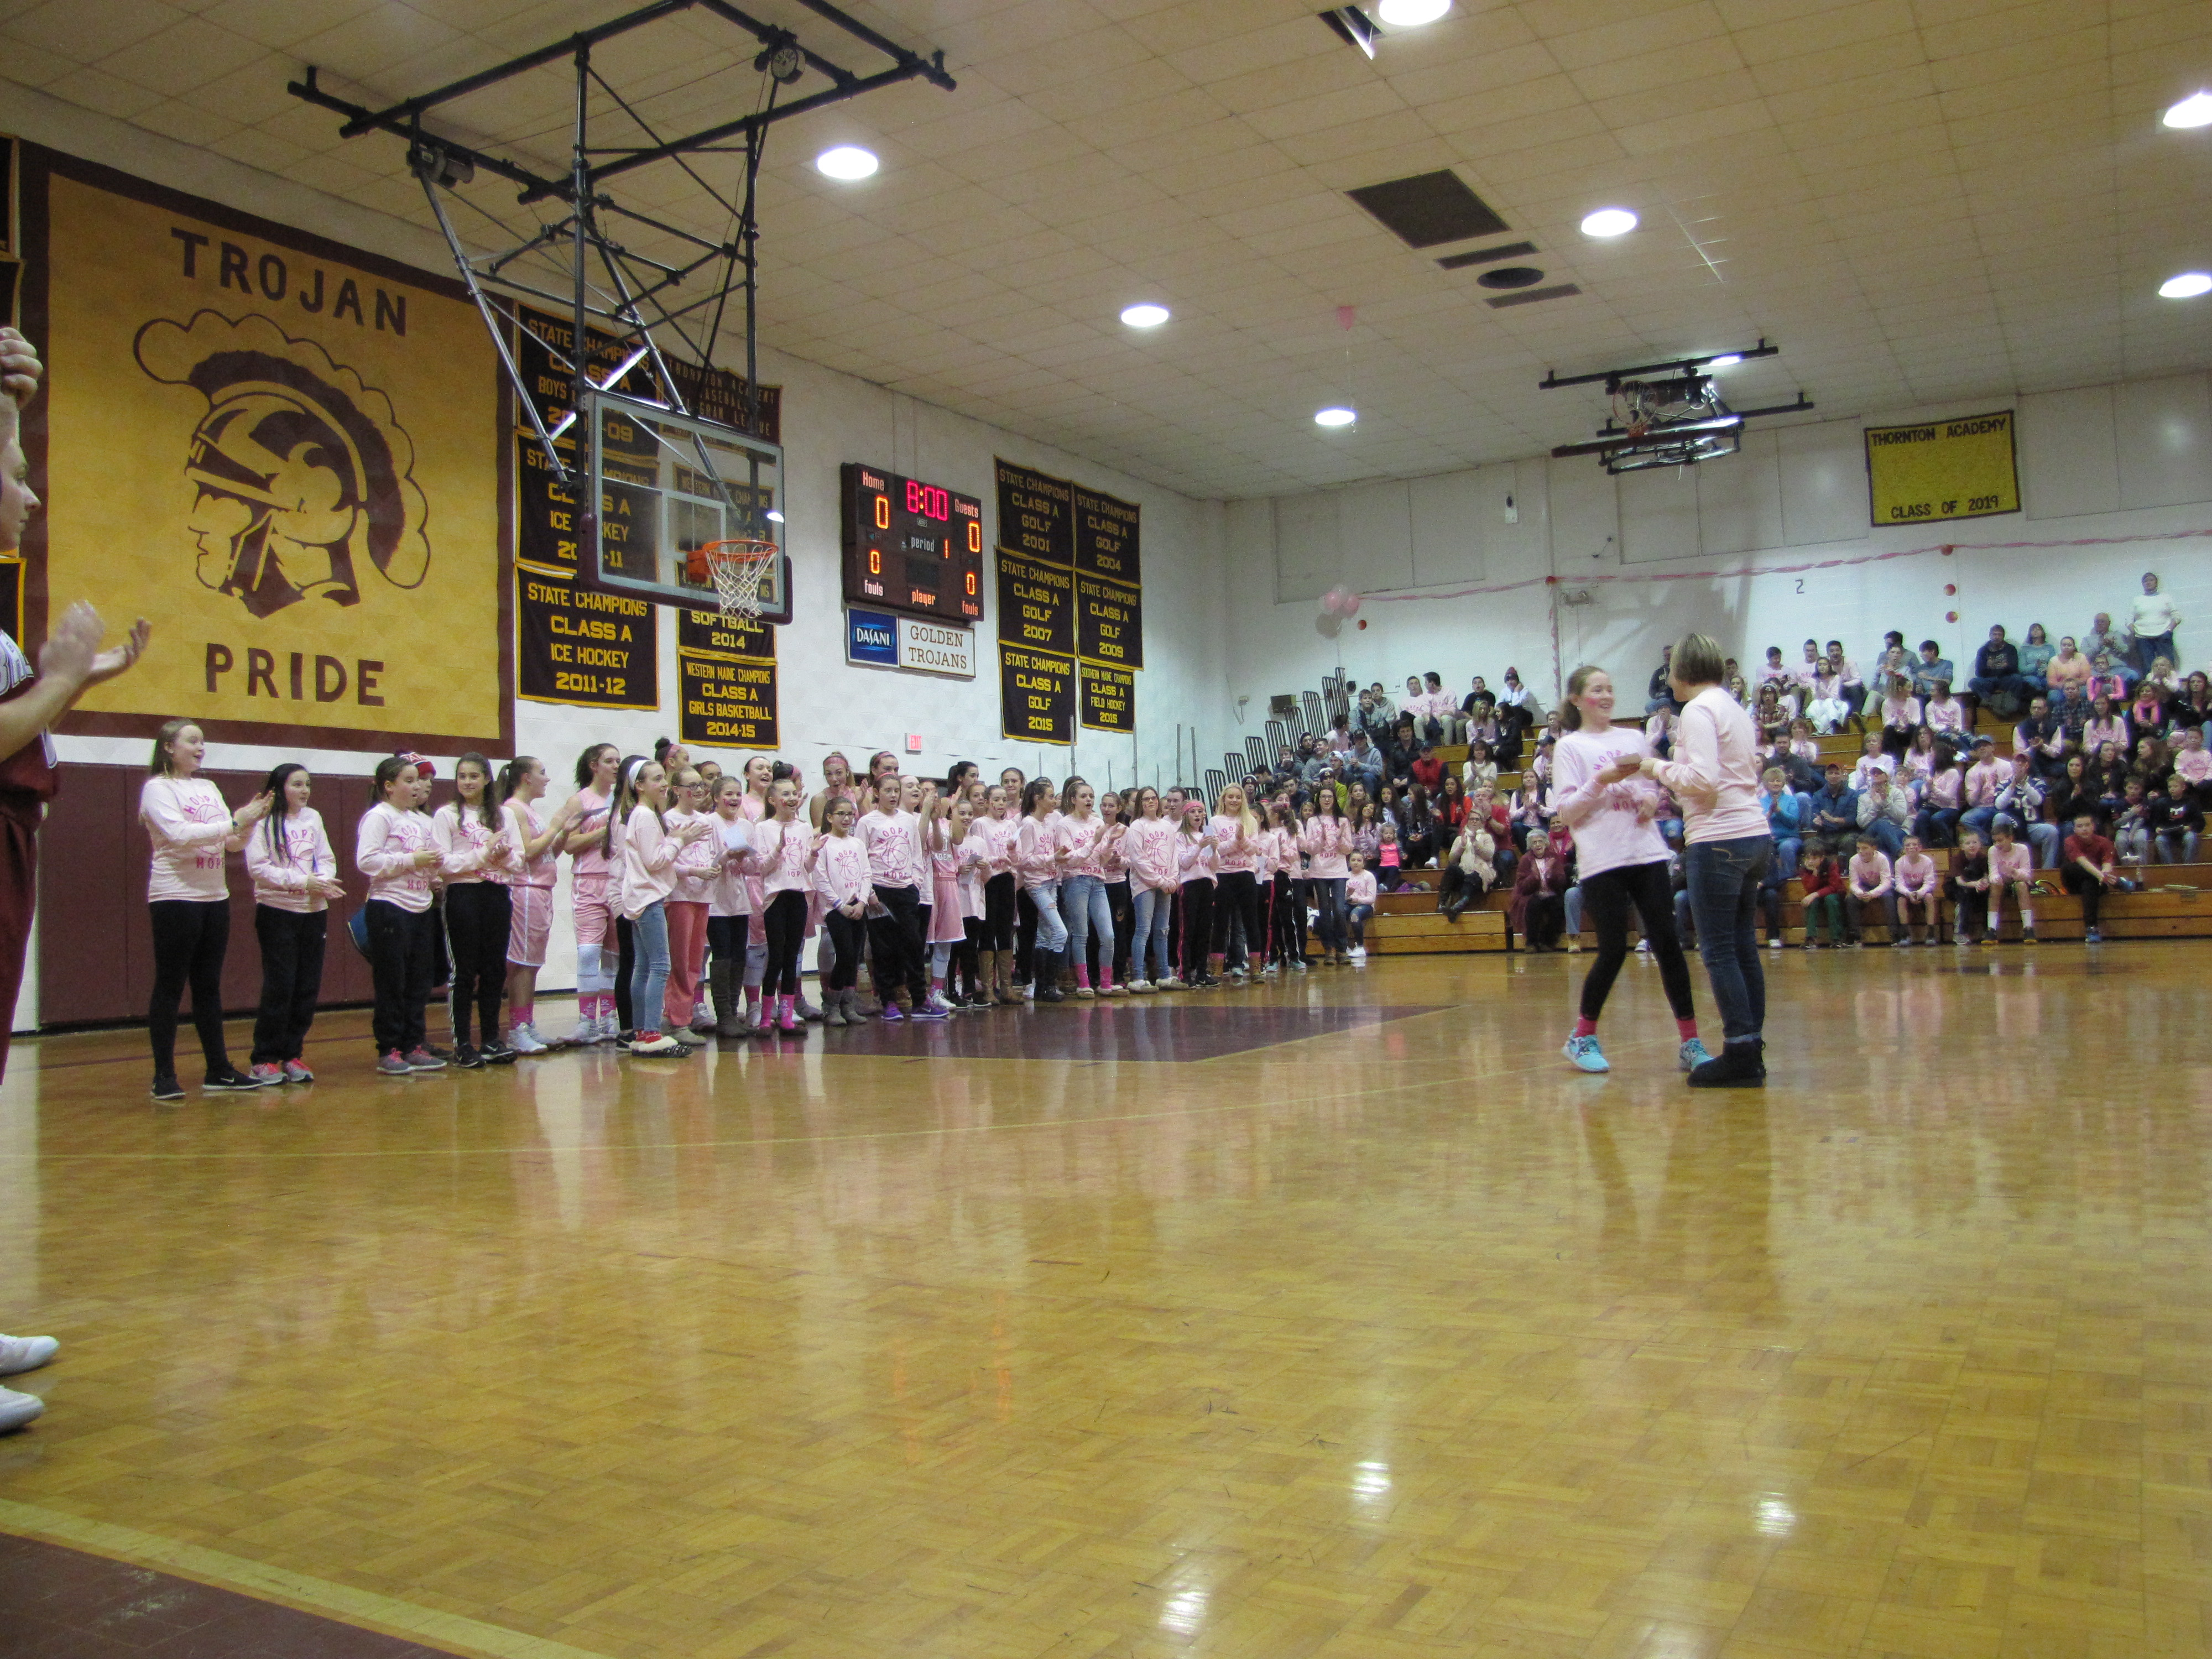 TAYLOR MORRISON/JOURNAL TRIBUNEStudents are recognized for raising funds for cancer research during the Hoops for Hope series at Thornton Academy, Saturday Jan. 14, 2017.